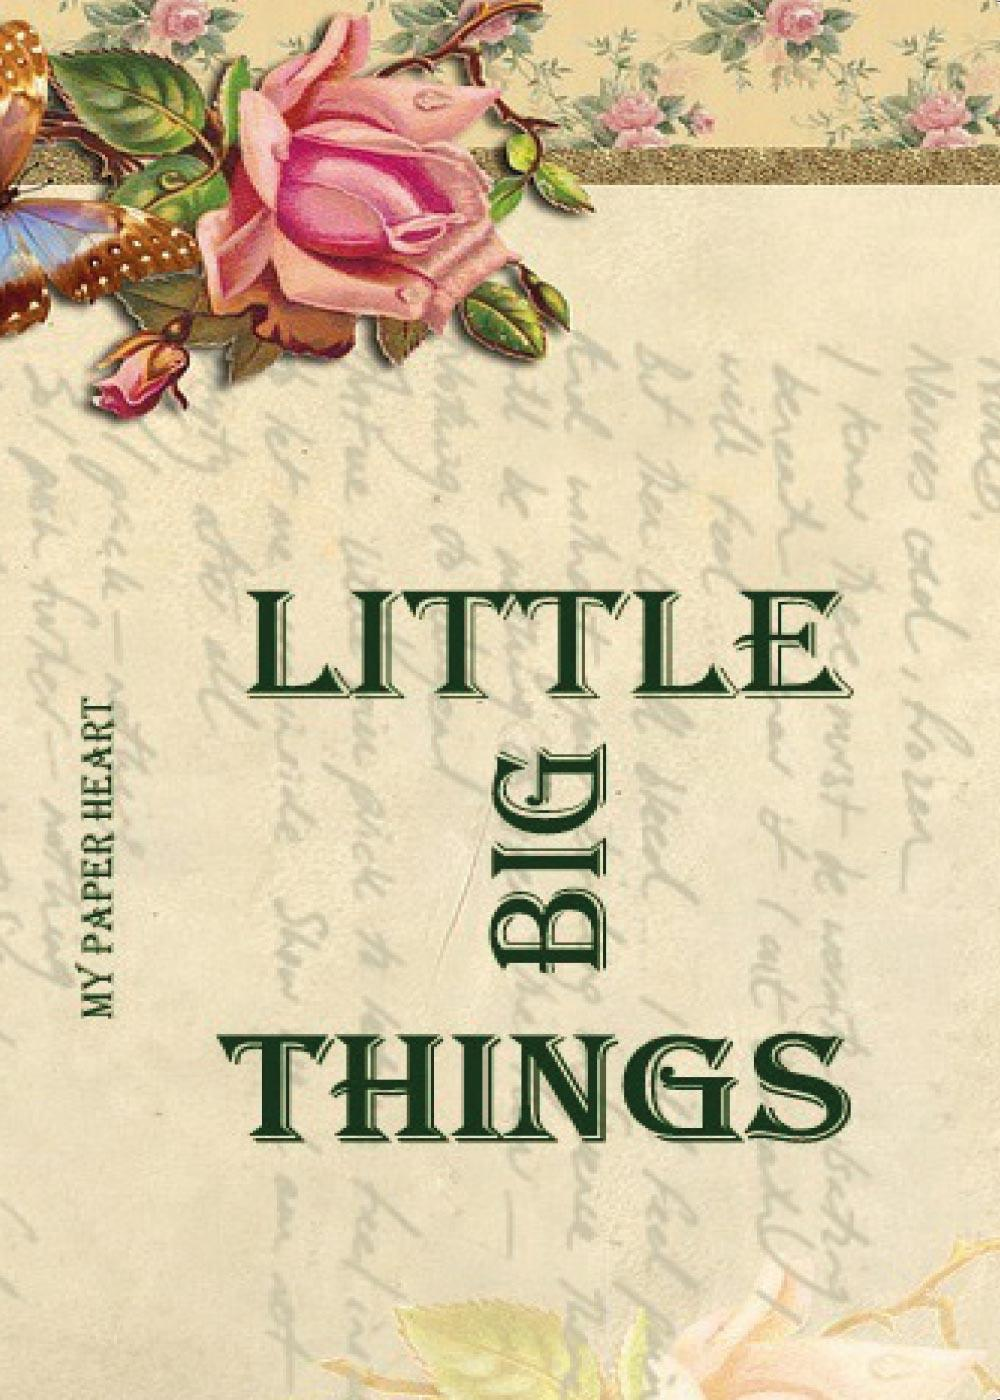 Little big things